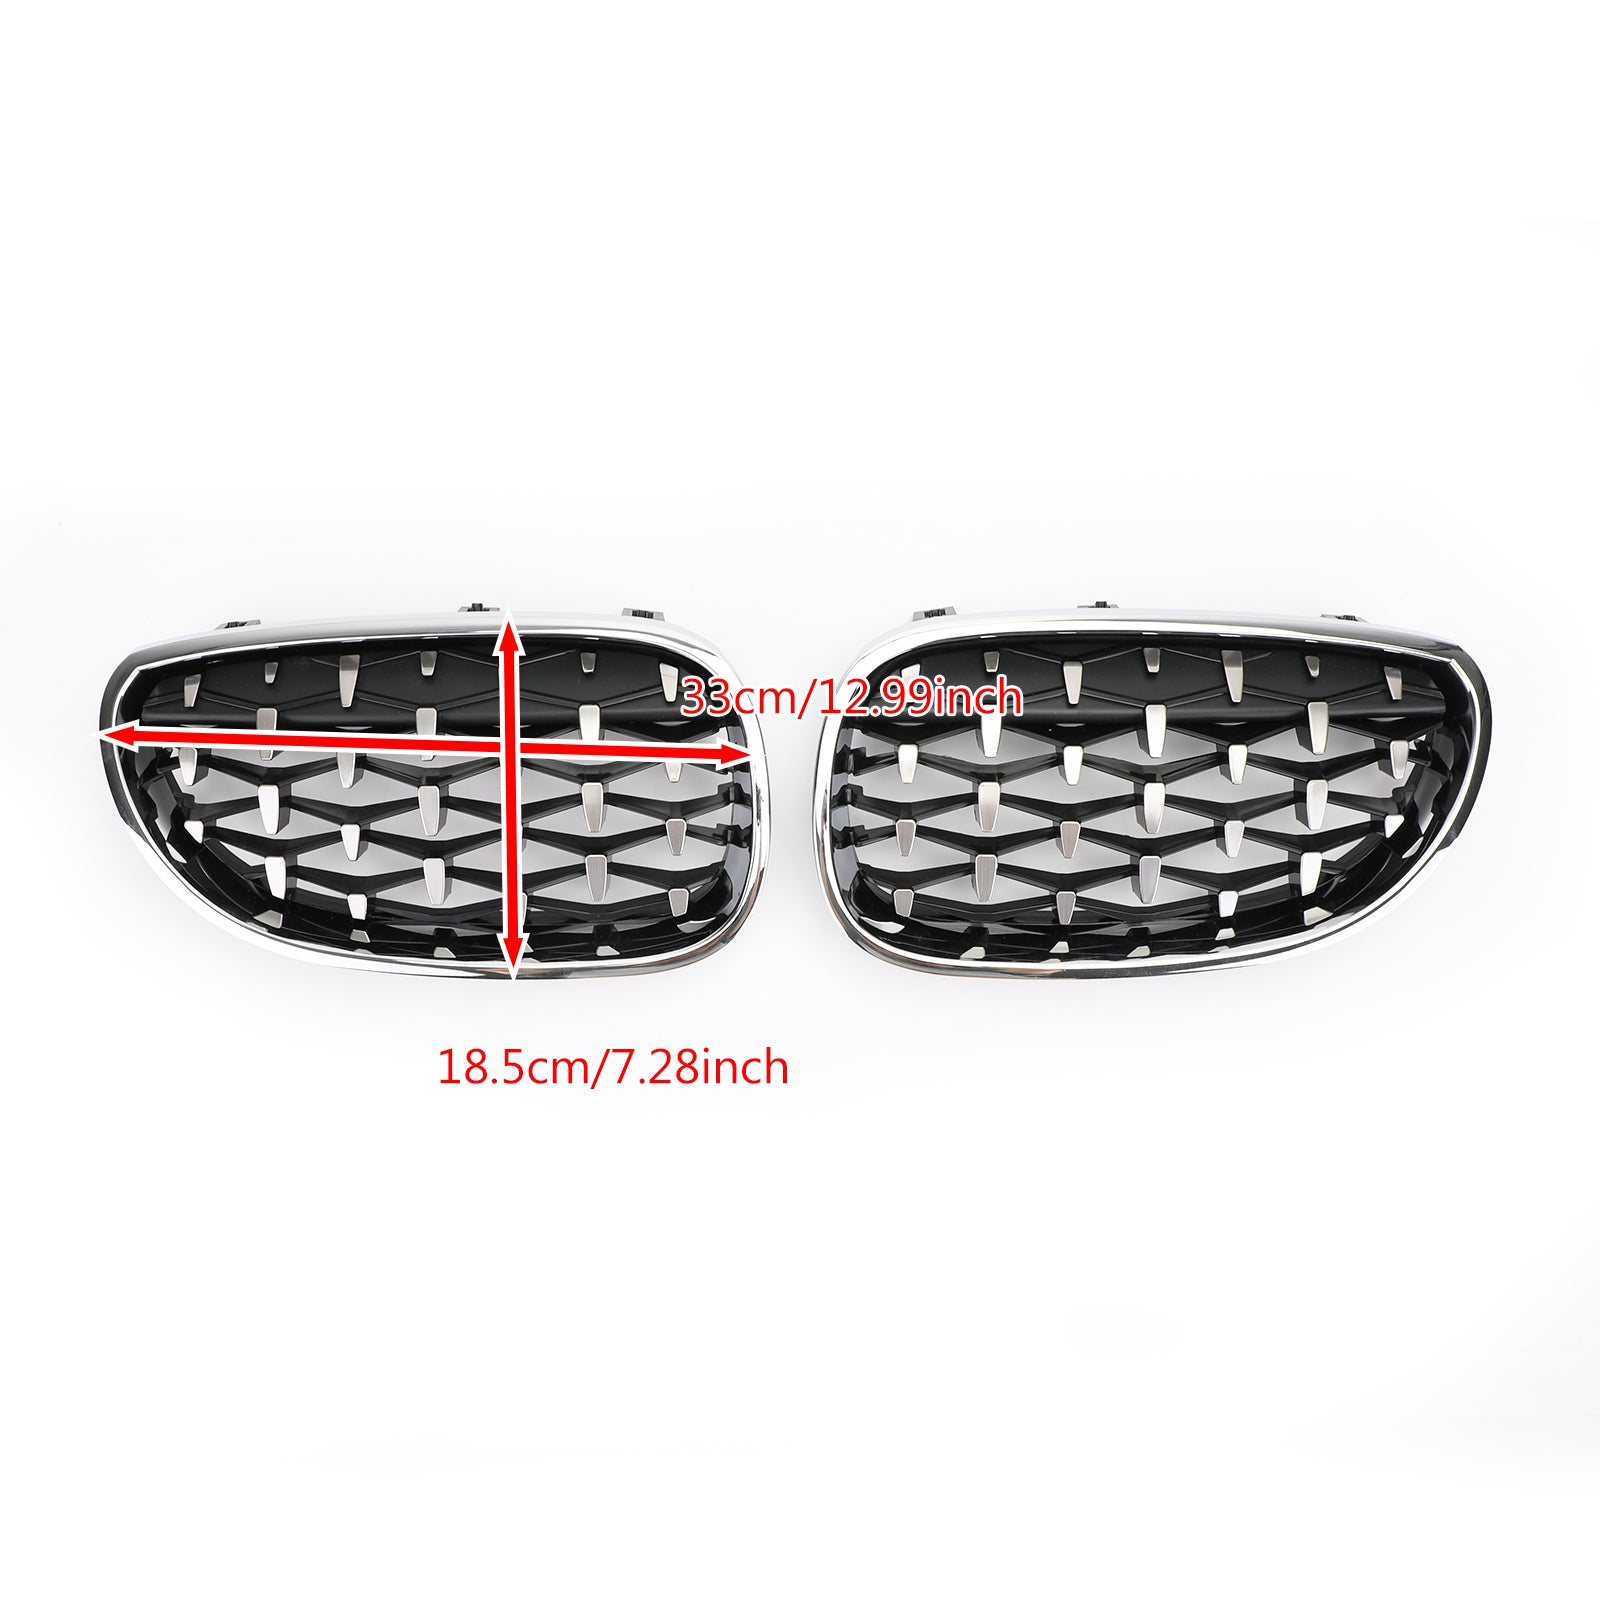 Pair Chrome Diamond Style Front Grill Fit For 2003-2010 BMW E60 E61 5 Series Generic